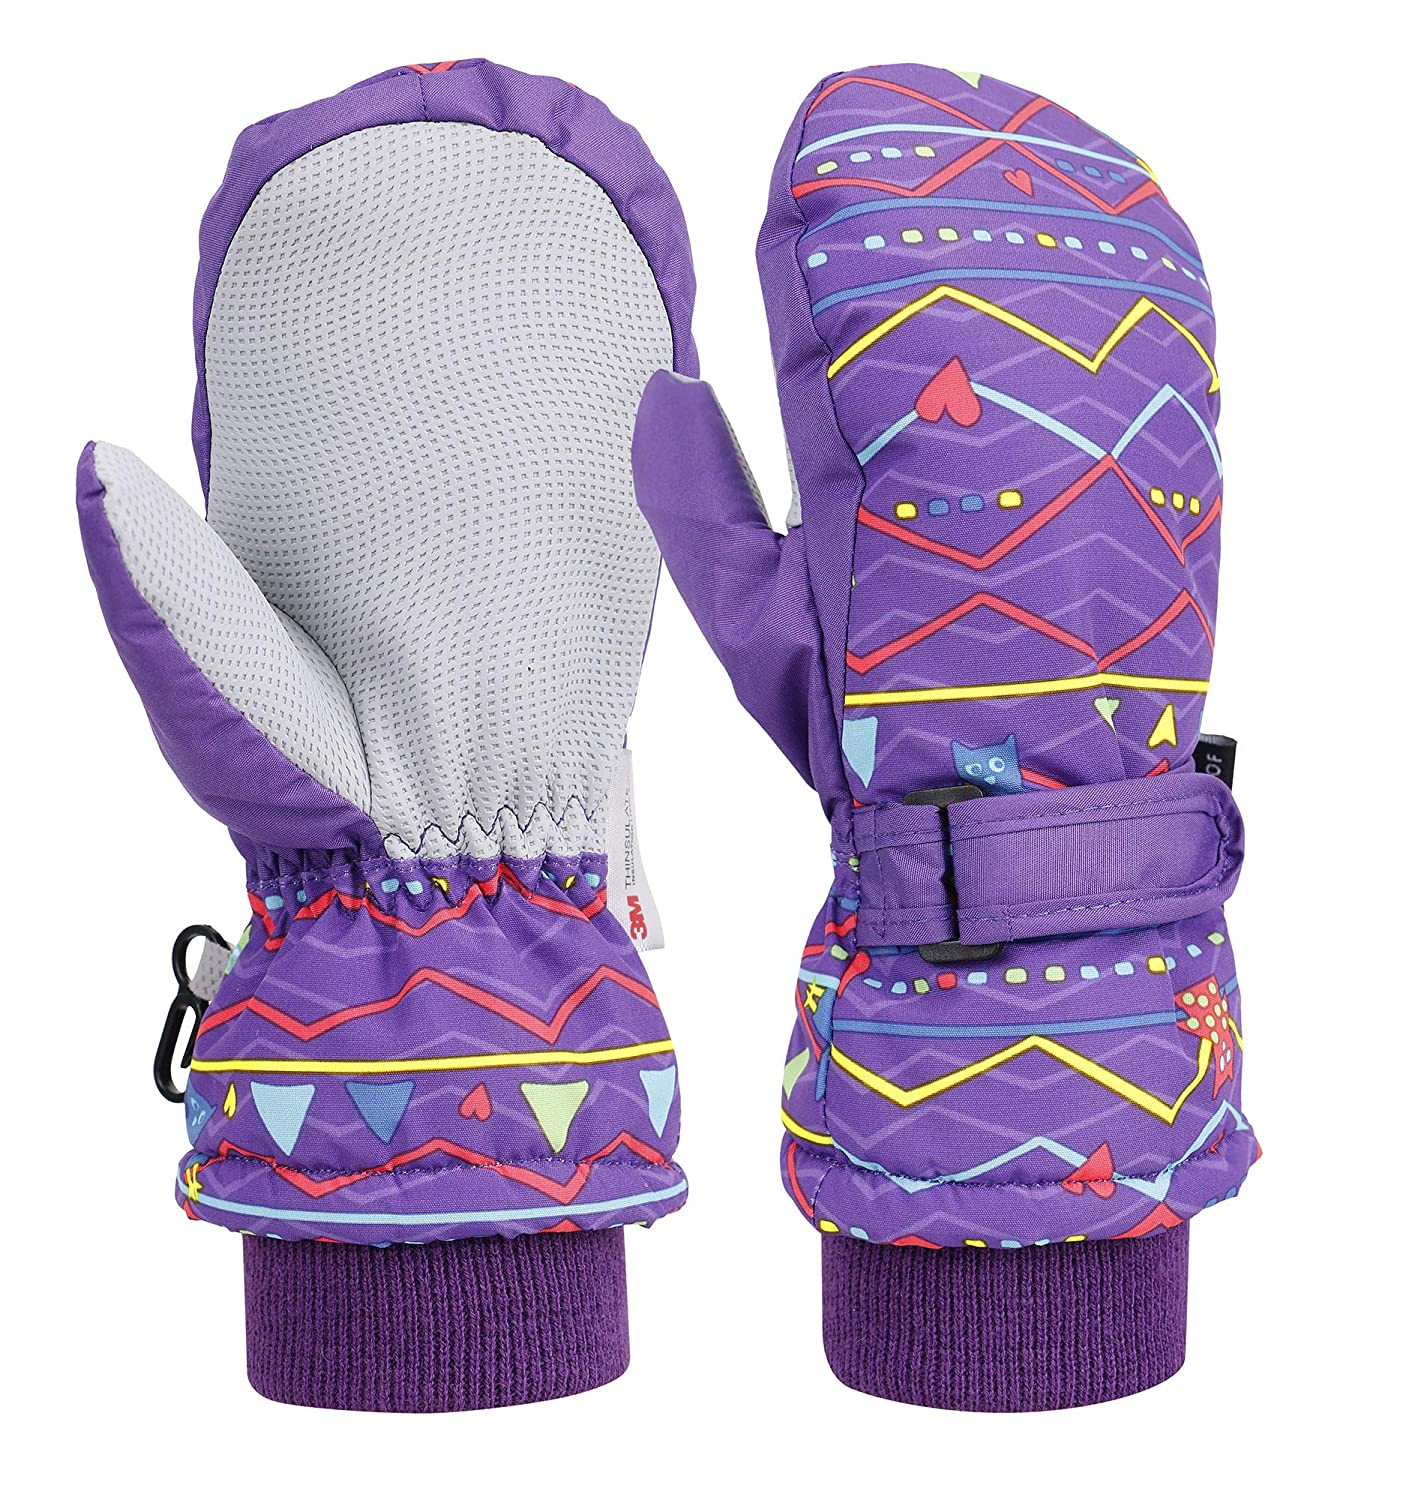 Livingston Thinsulate Lining Outdoors Waterproof Winter Ski Mitten Gloves